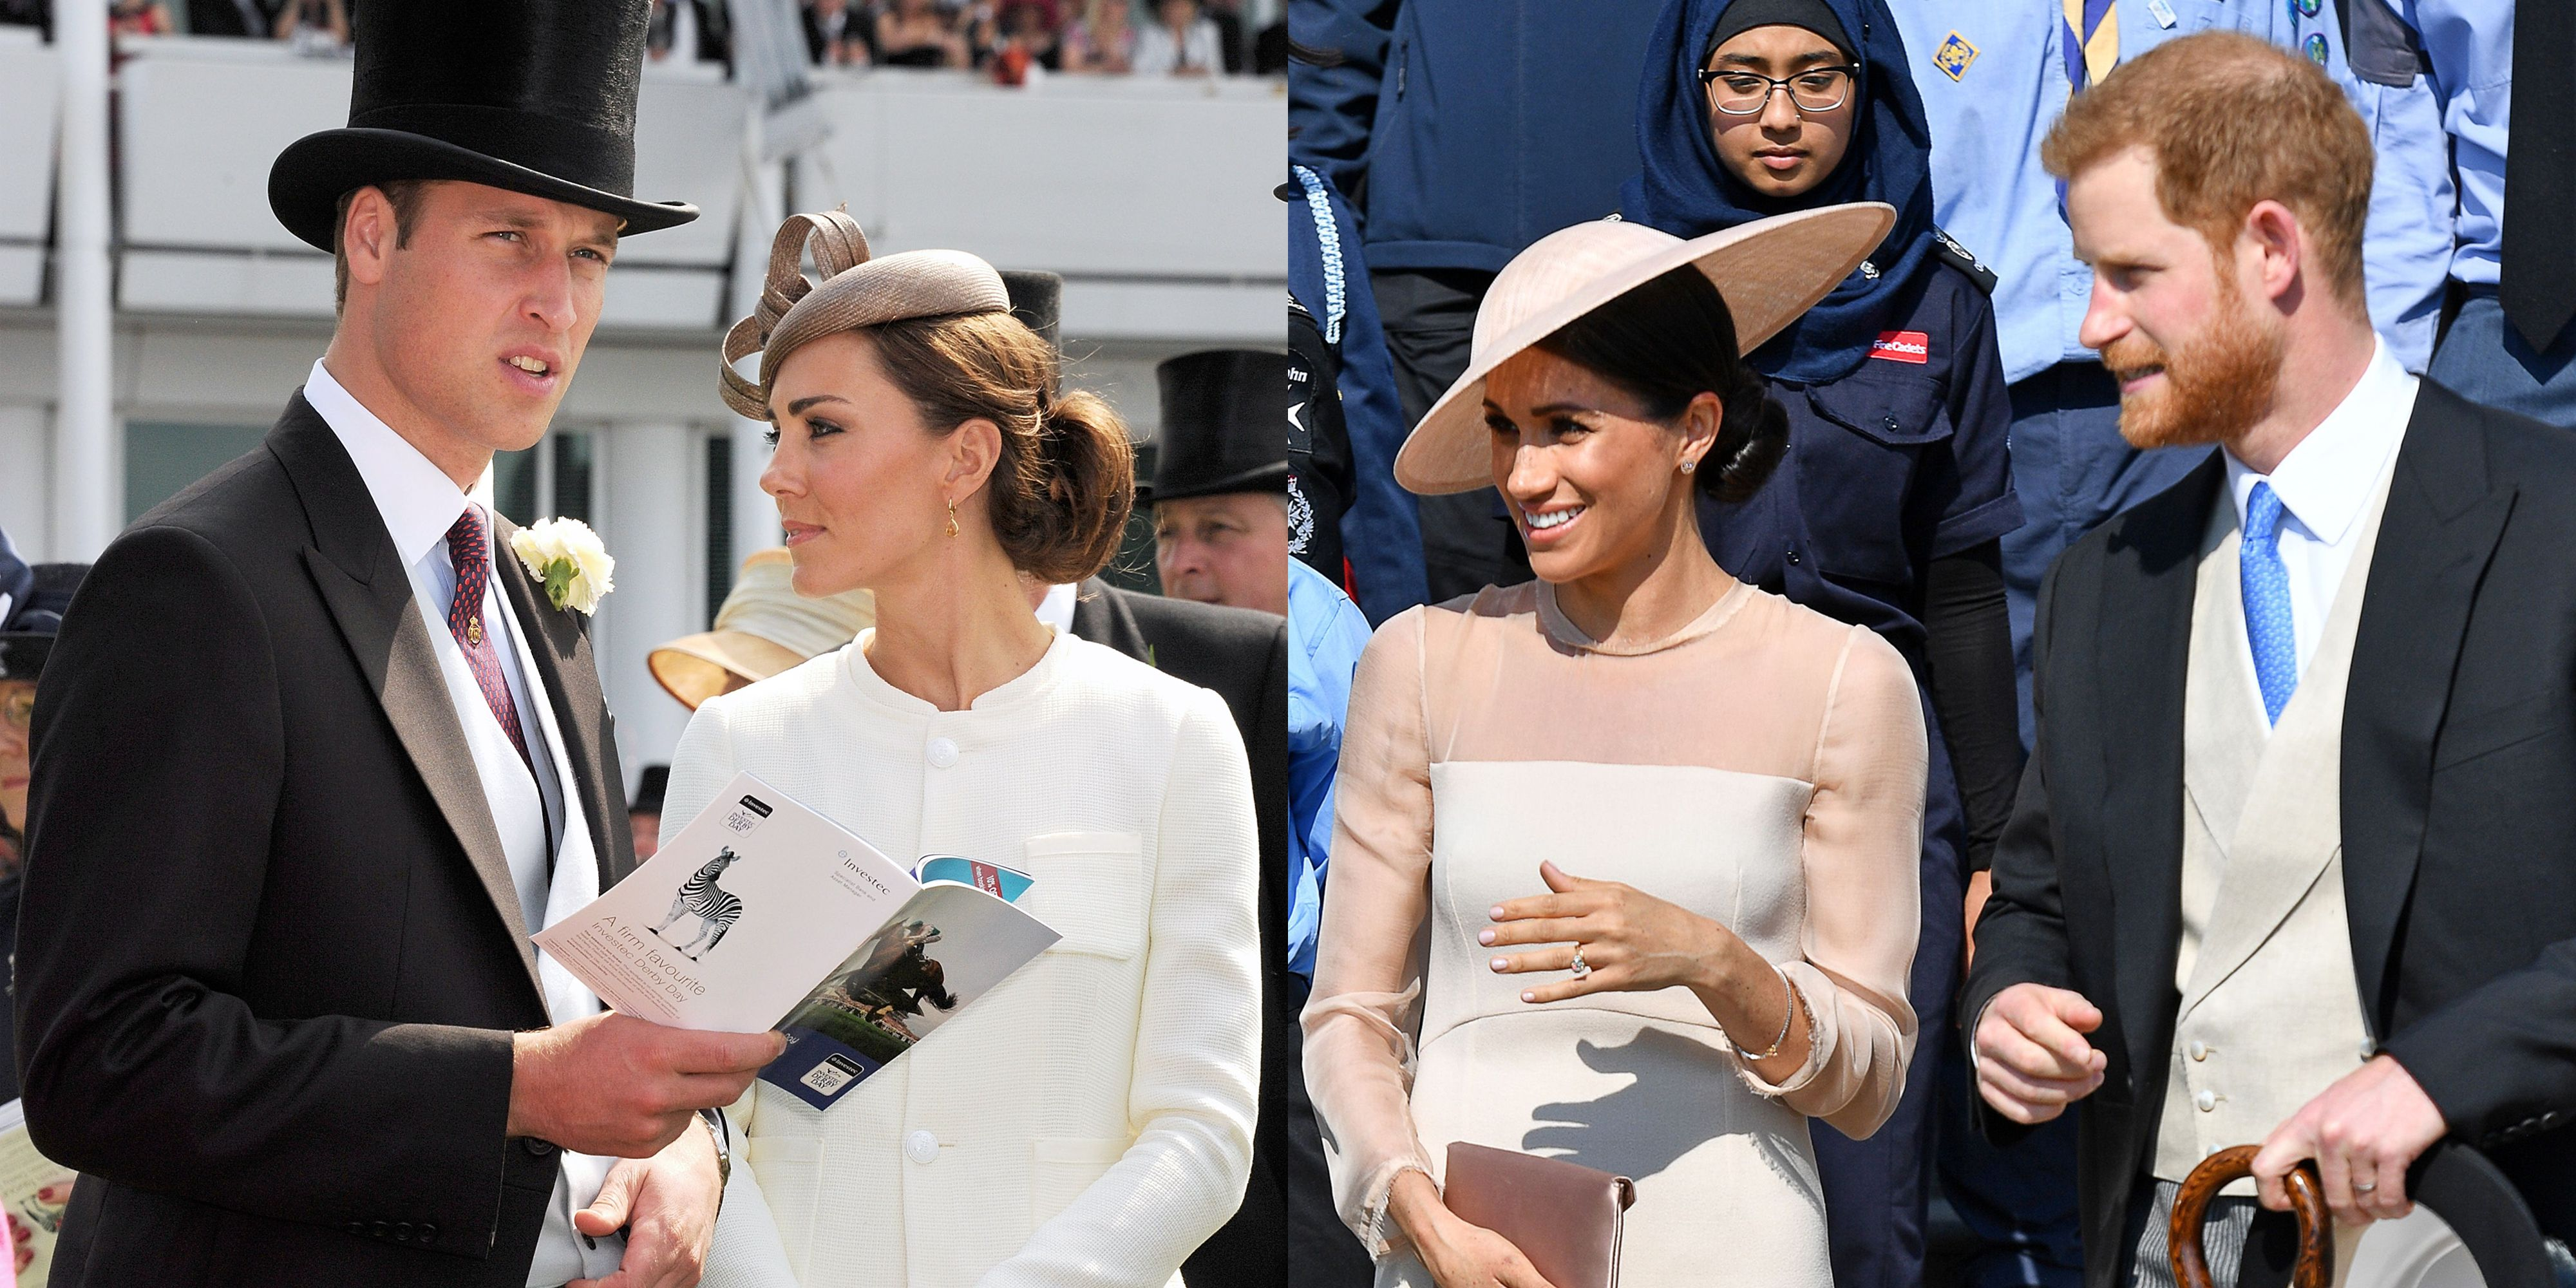 76fb8cb7e7a57 How Meghan Markle s Duchess Style Compares to Kate Middleton s